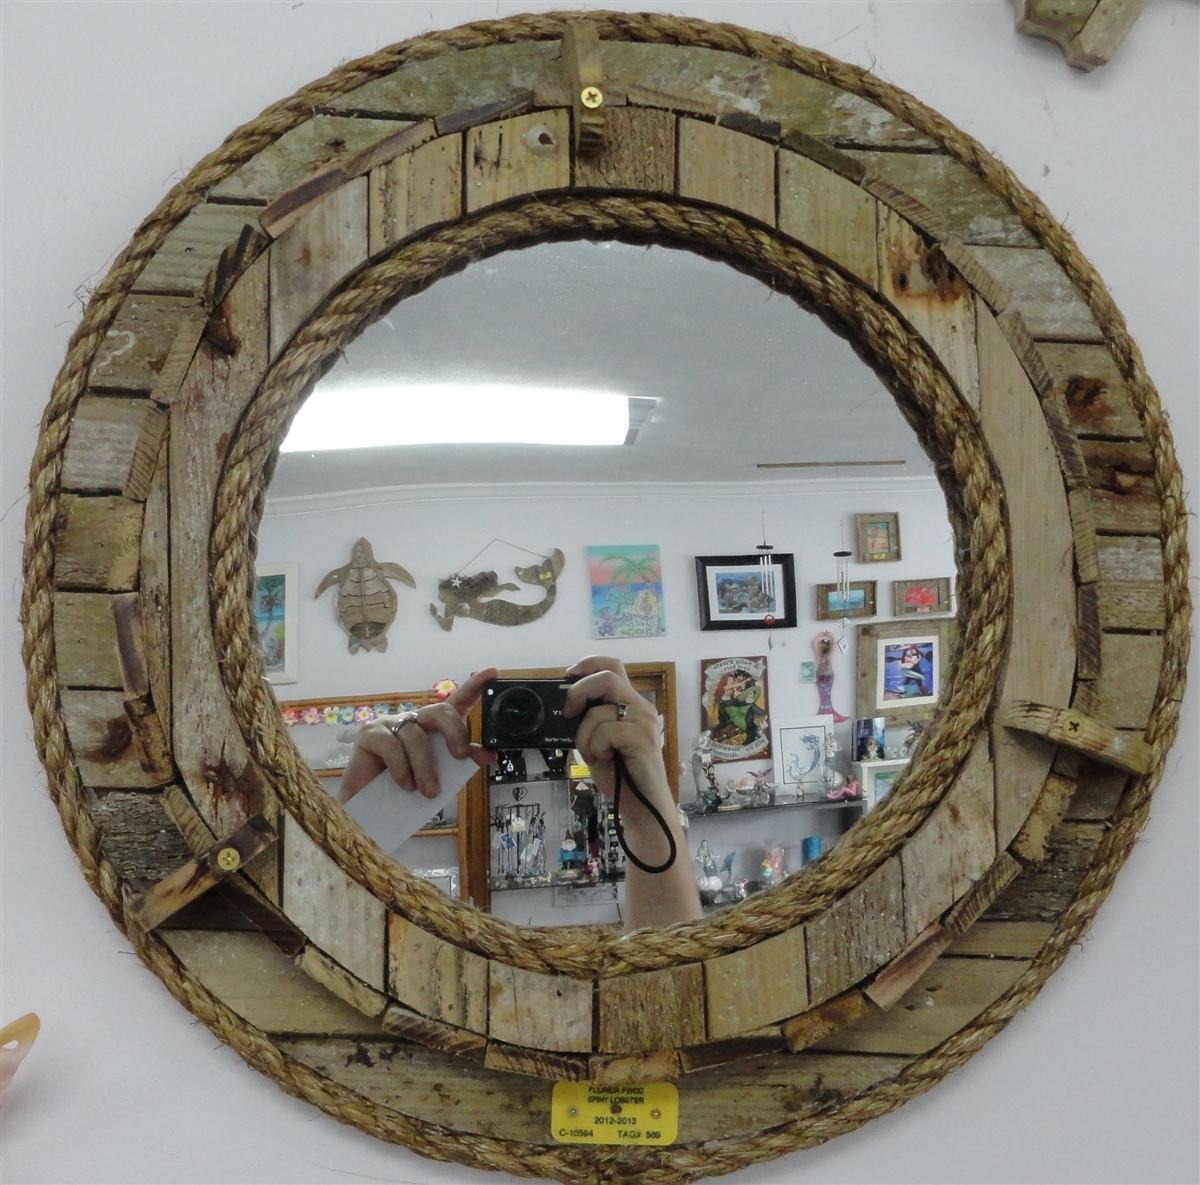 Handmade Porthole Mirror For Porthole Mirrors (Image 3 of 15)